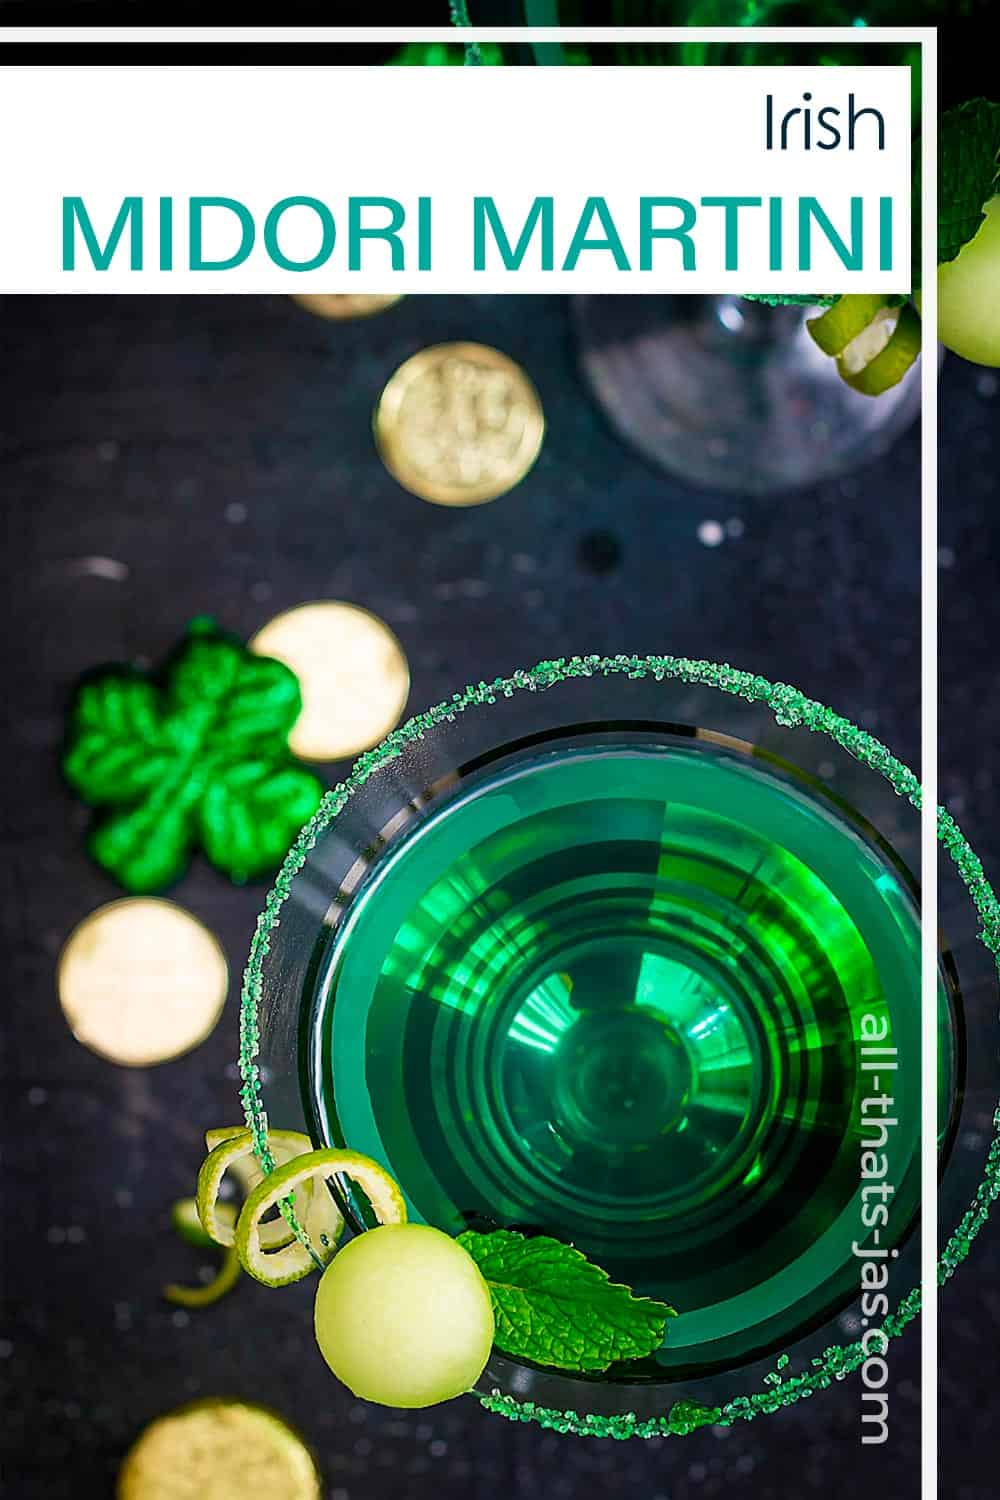 Overhead view of a green martini in a glass with text overlay.